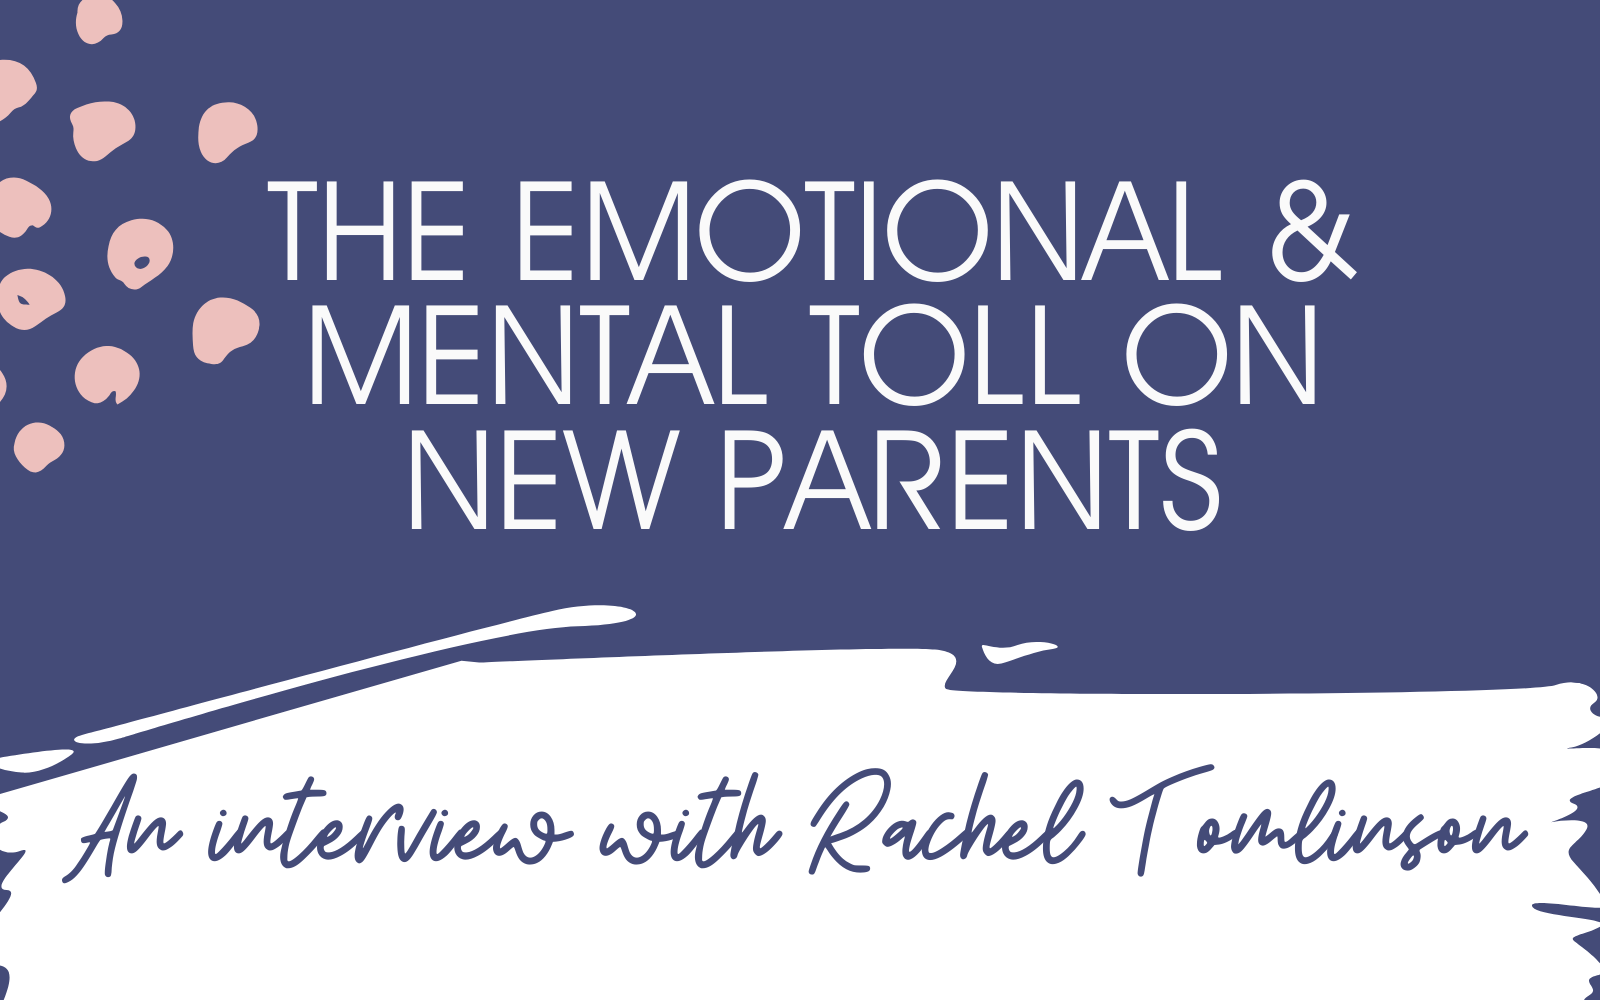 The Emotional Journey of New Parents: an interview with psychologist Rachel Tomlinson